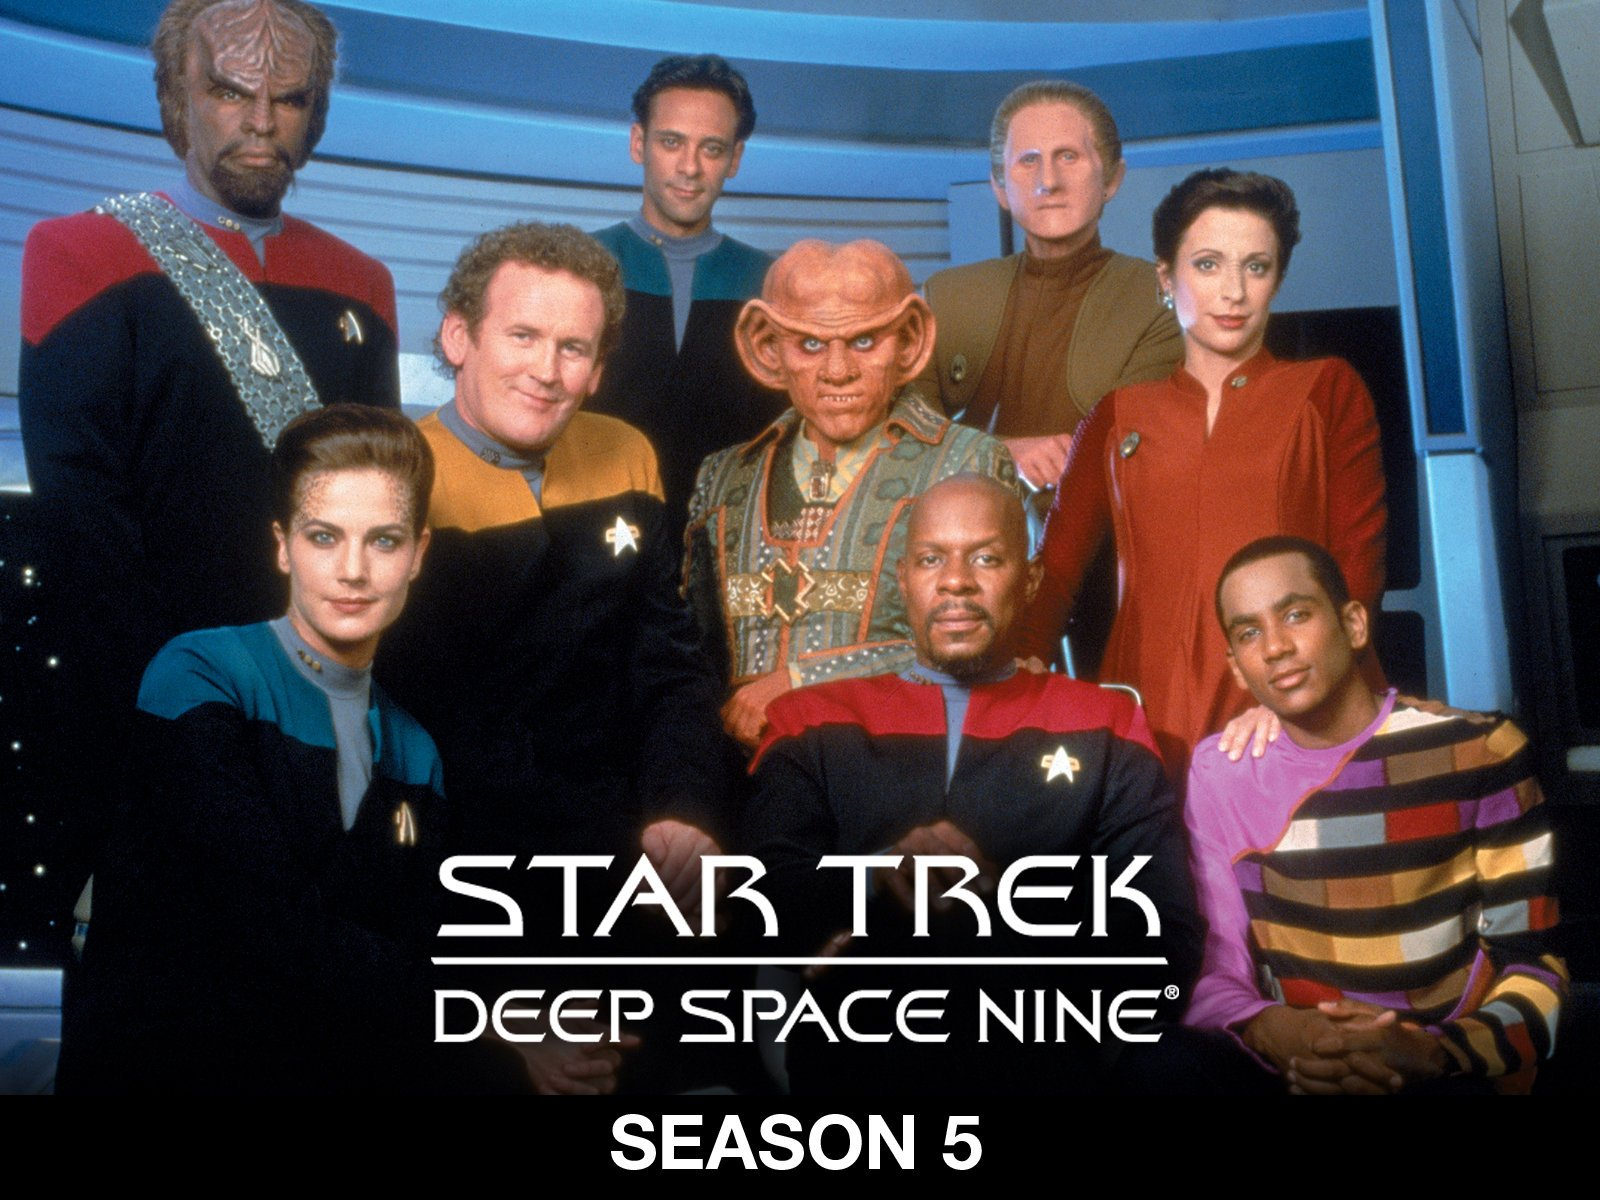 Watch Star Trek: Deep Space Nine Season 5 | Prime Video